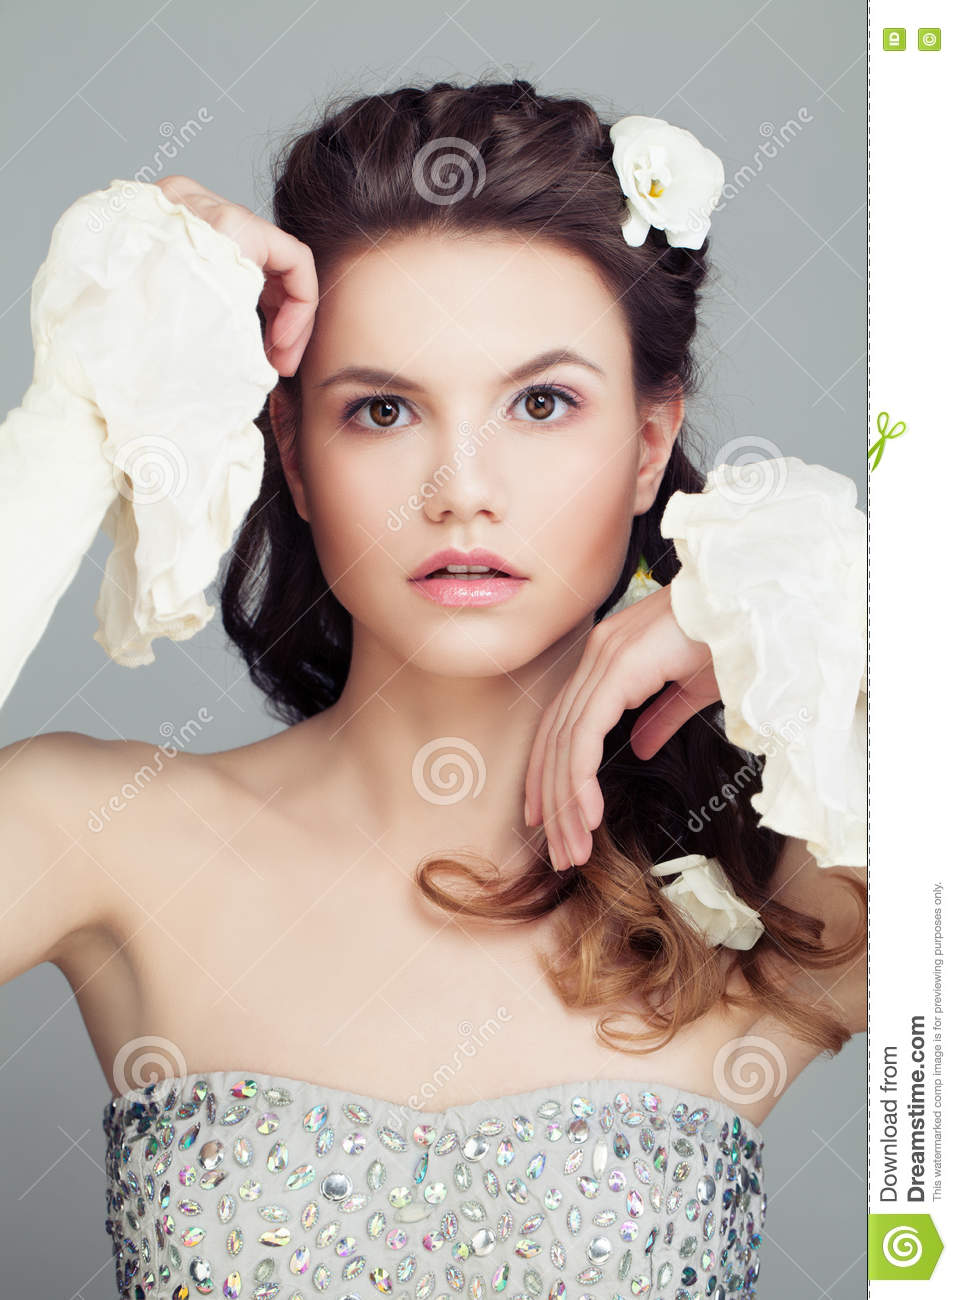 Fashion model with bridal hairstyle beautiful hair and flowers fashion model with bridal hairstyle beautiful hair and flowers izmirmasajfo